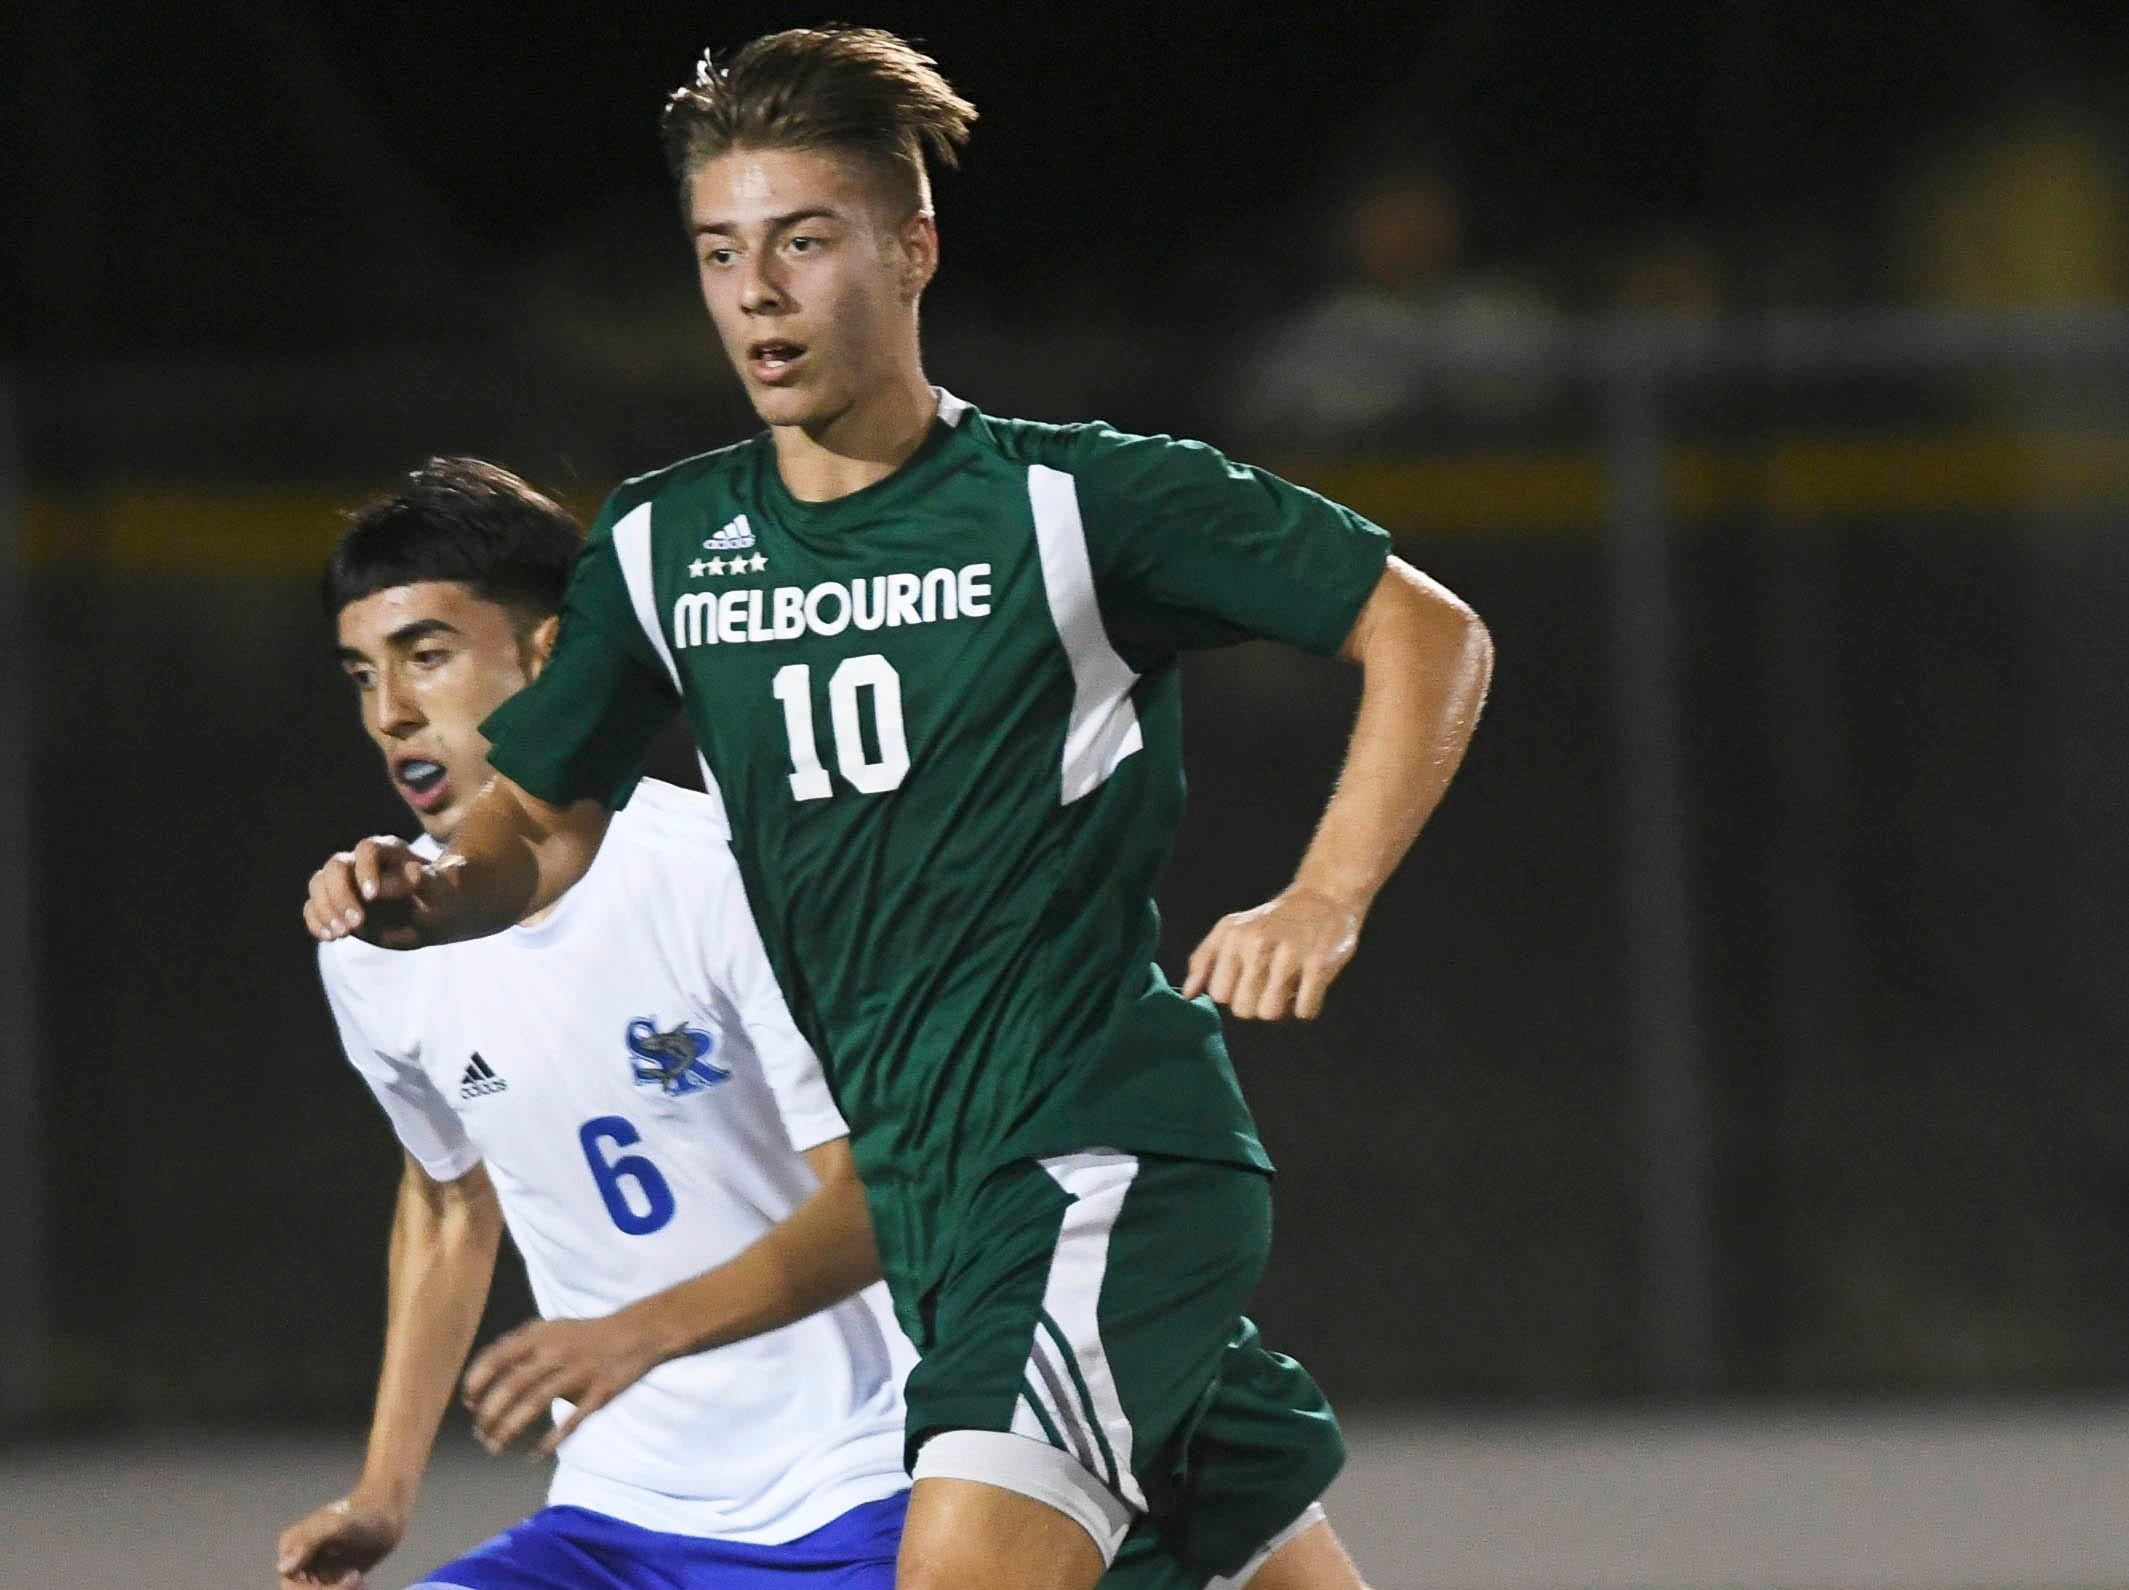 Ivan Moreno of Sebastian River and Aden O'Hara of Melbourne chase the ball during Friday's game in Melbourne.